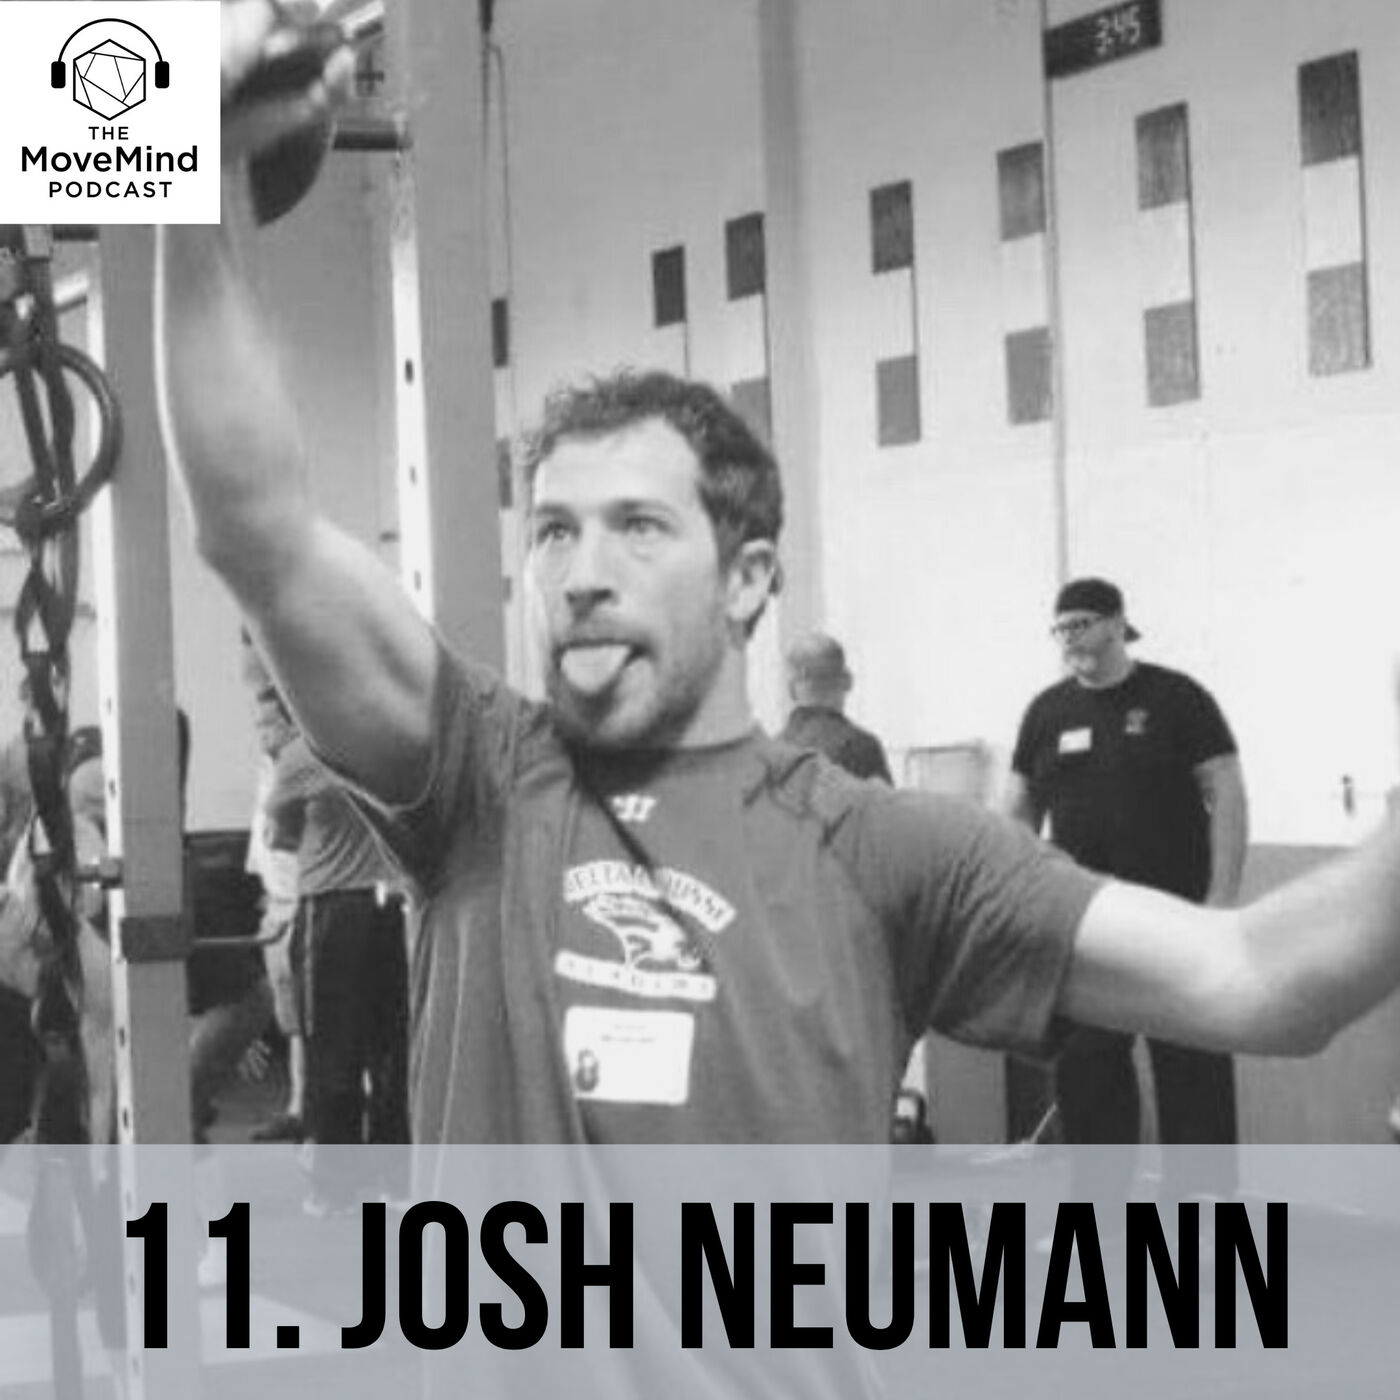 Josh Neumann on Coaching With Enthusiasm, The First 15 Minutes and Encouraging Flow States (#11)